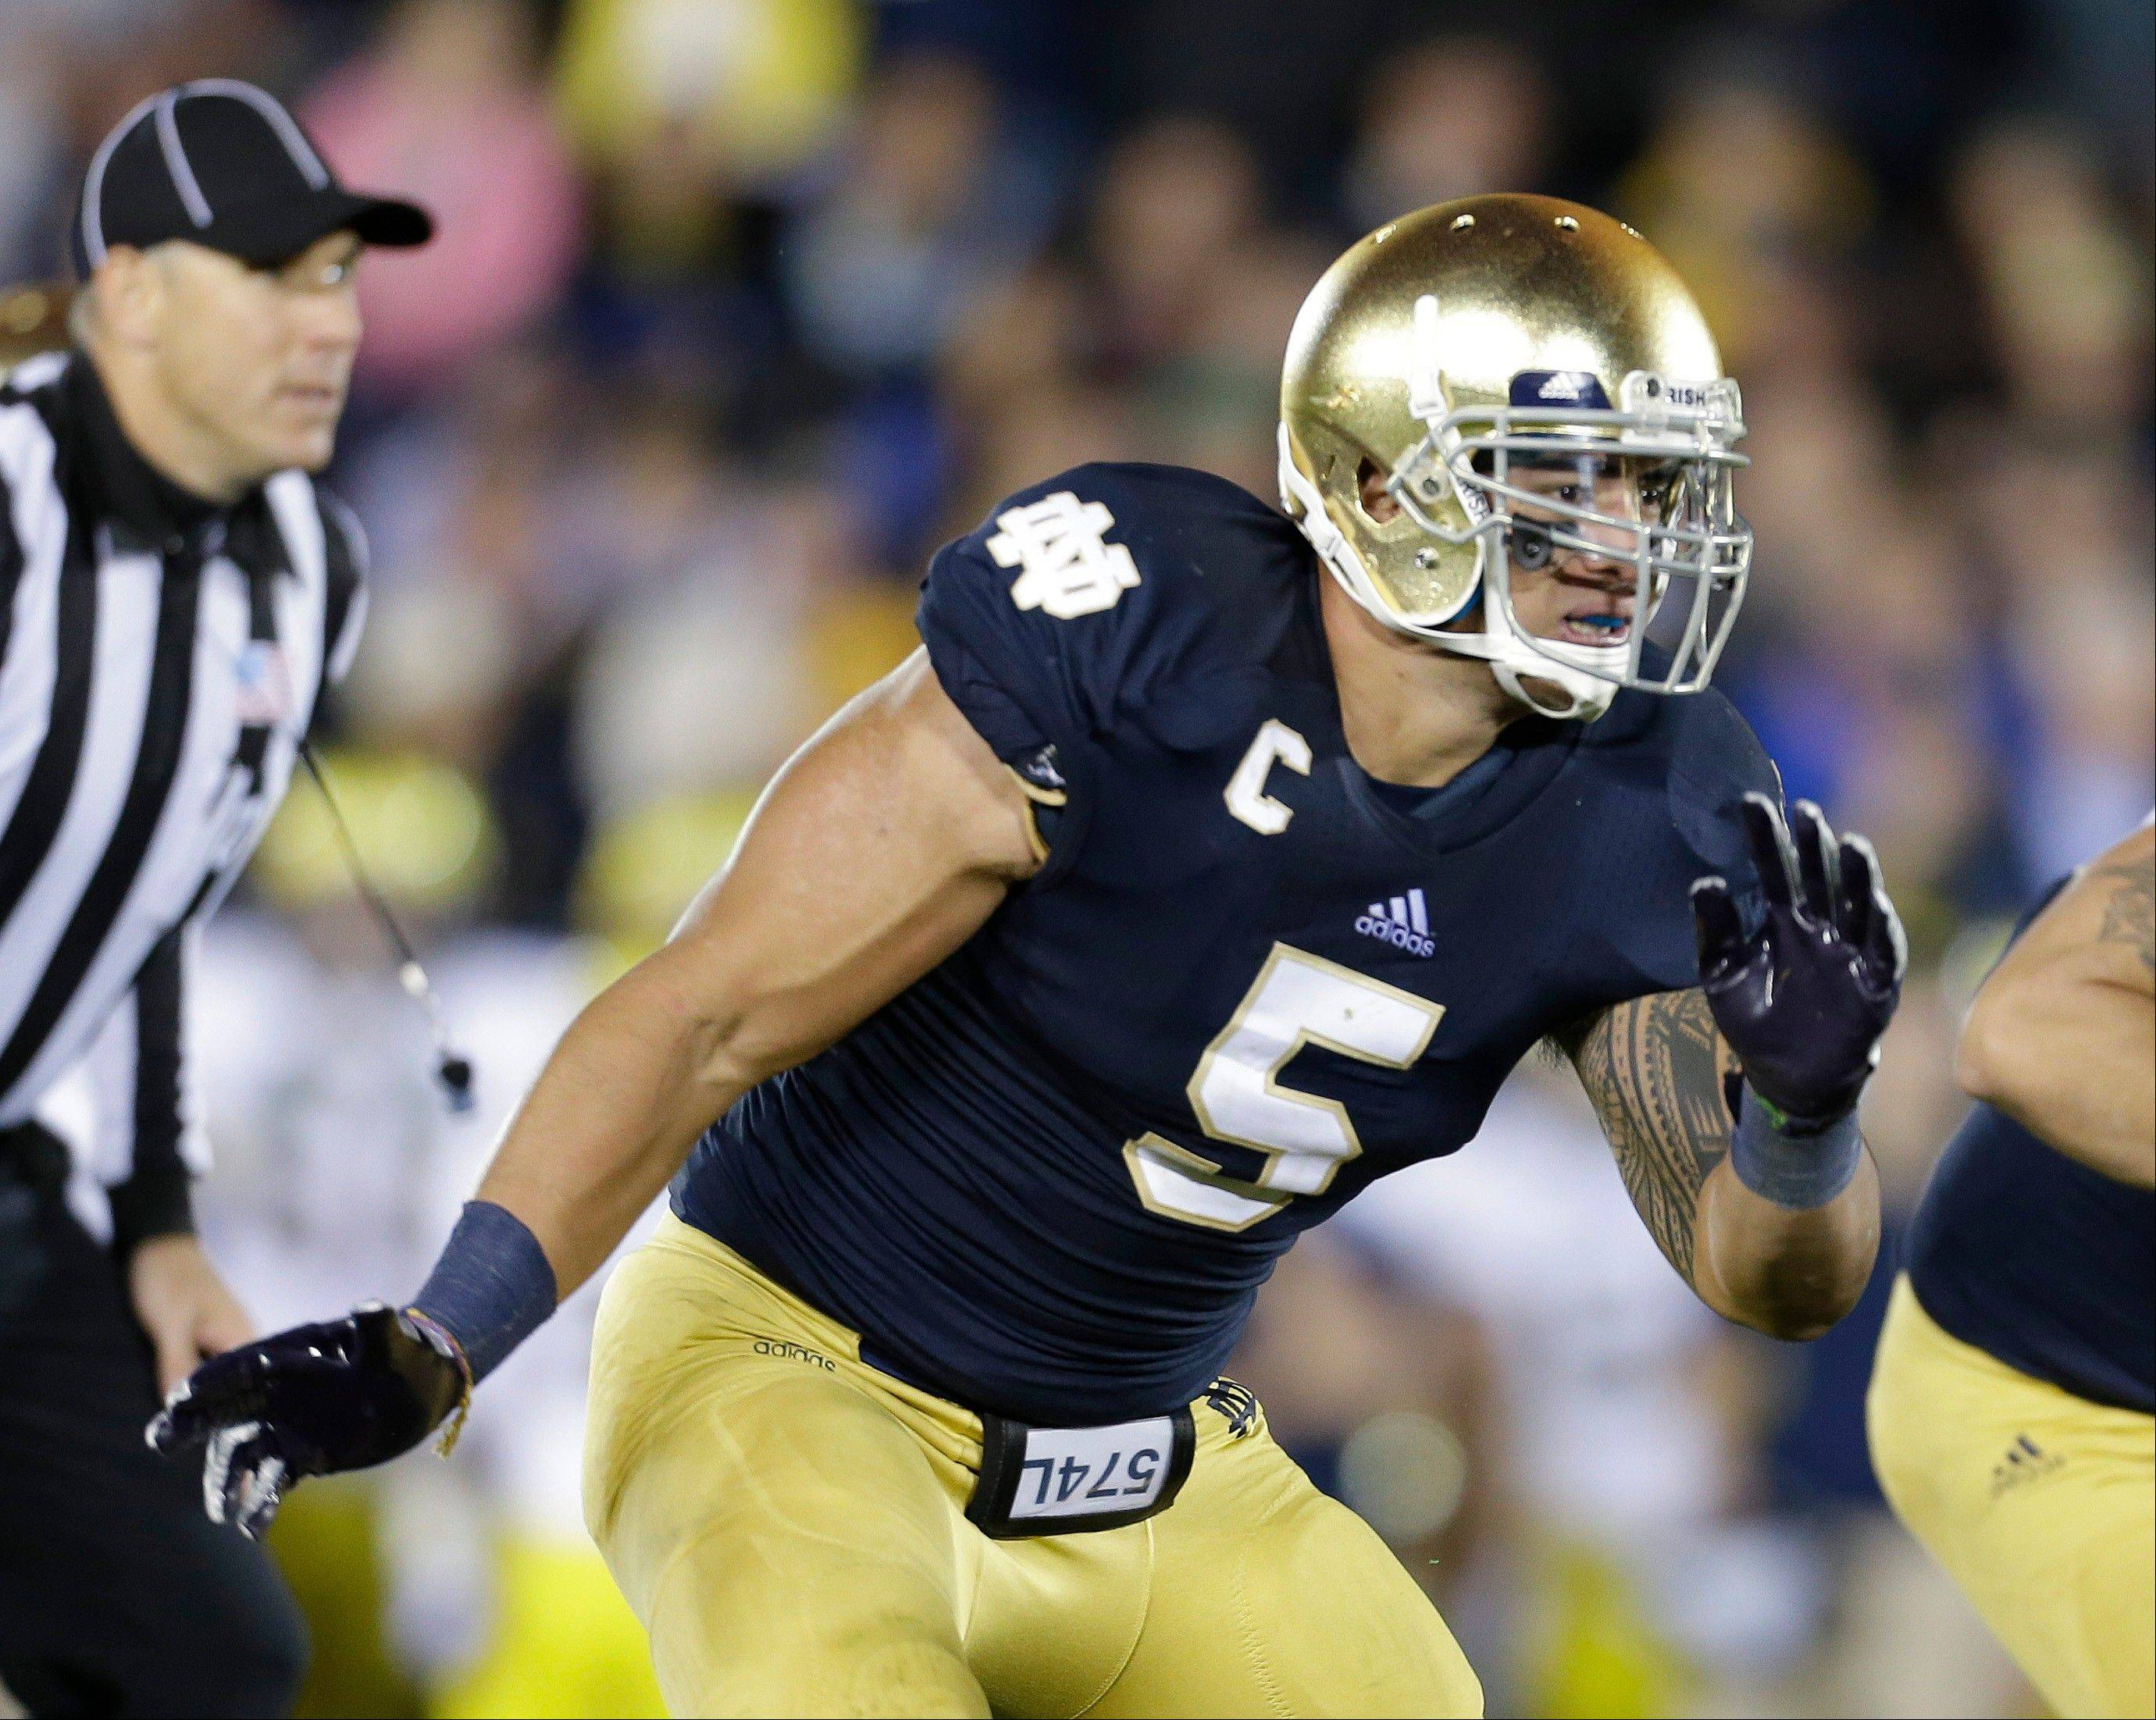 Notre Dame linebacker Manti Te�o pursues the football against Michigan, in South Bend, Ind. Notre Dame defensive coordinator Bob Diaco believes Manti Te�o is the finest football player in college.